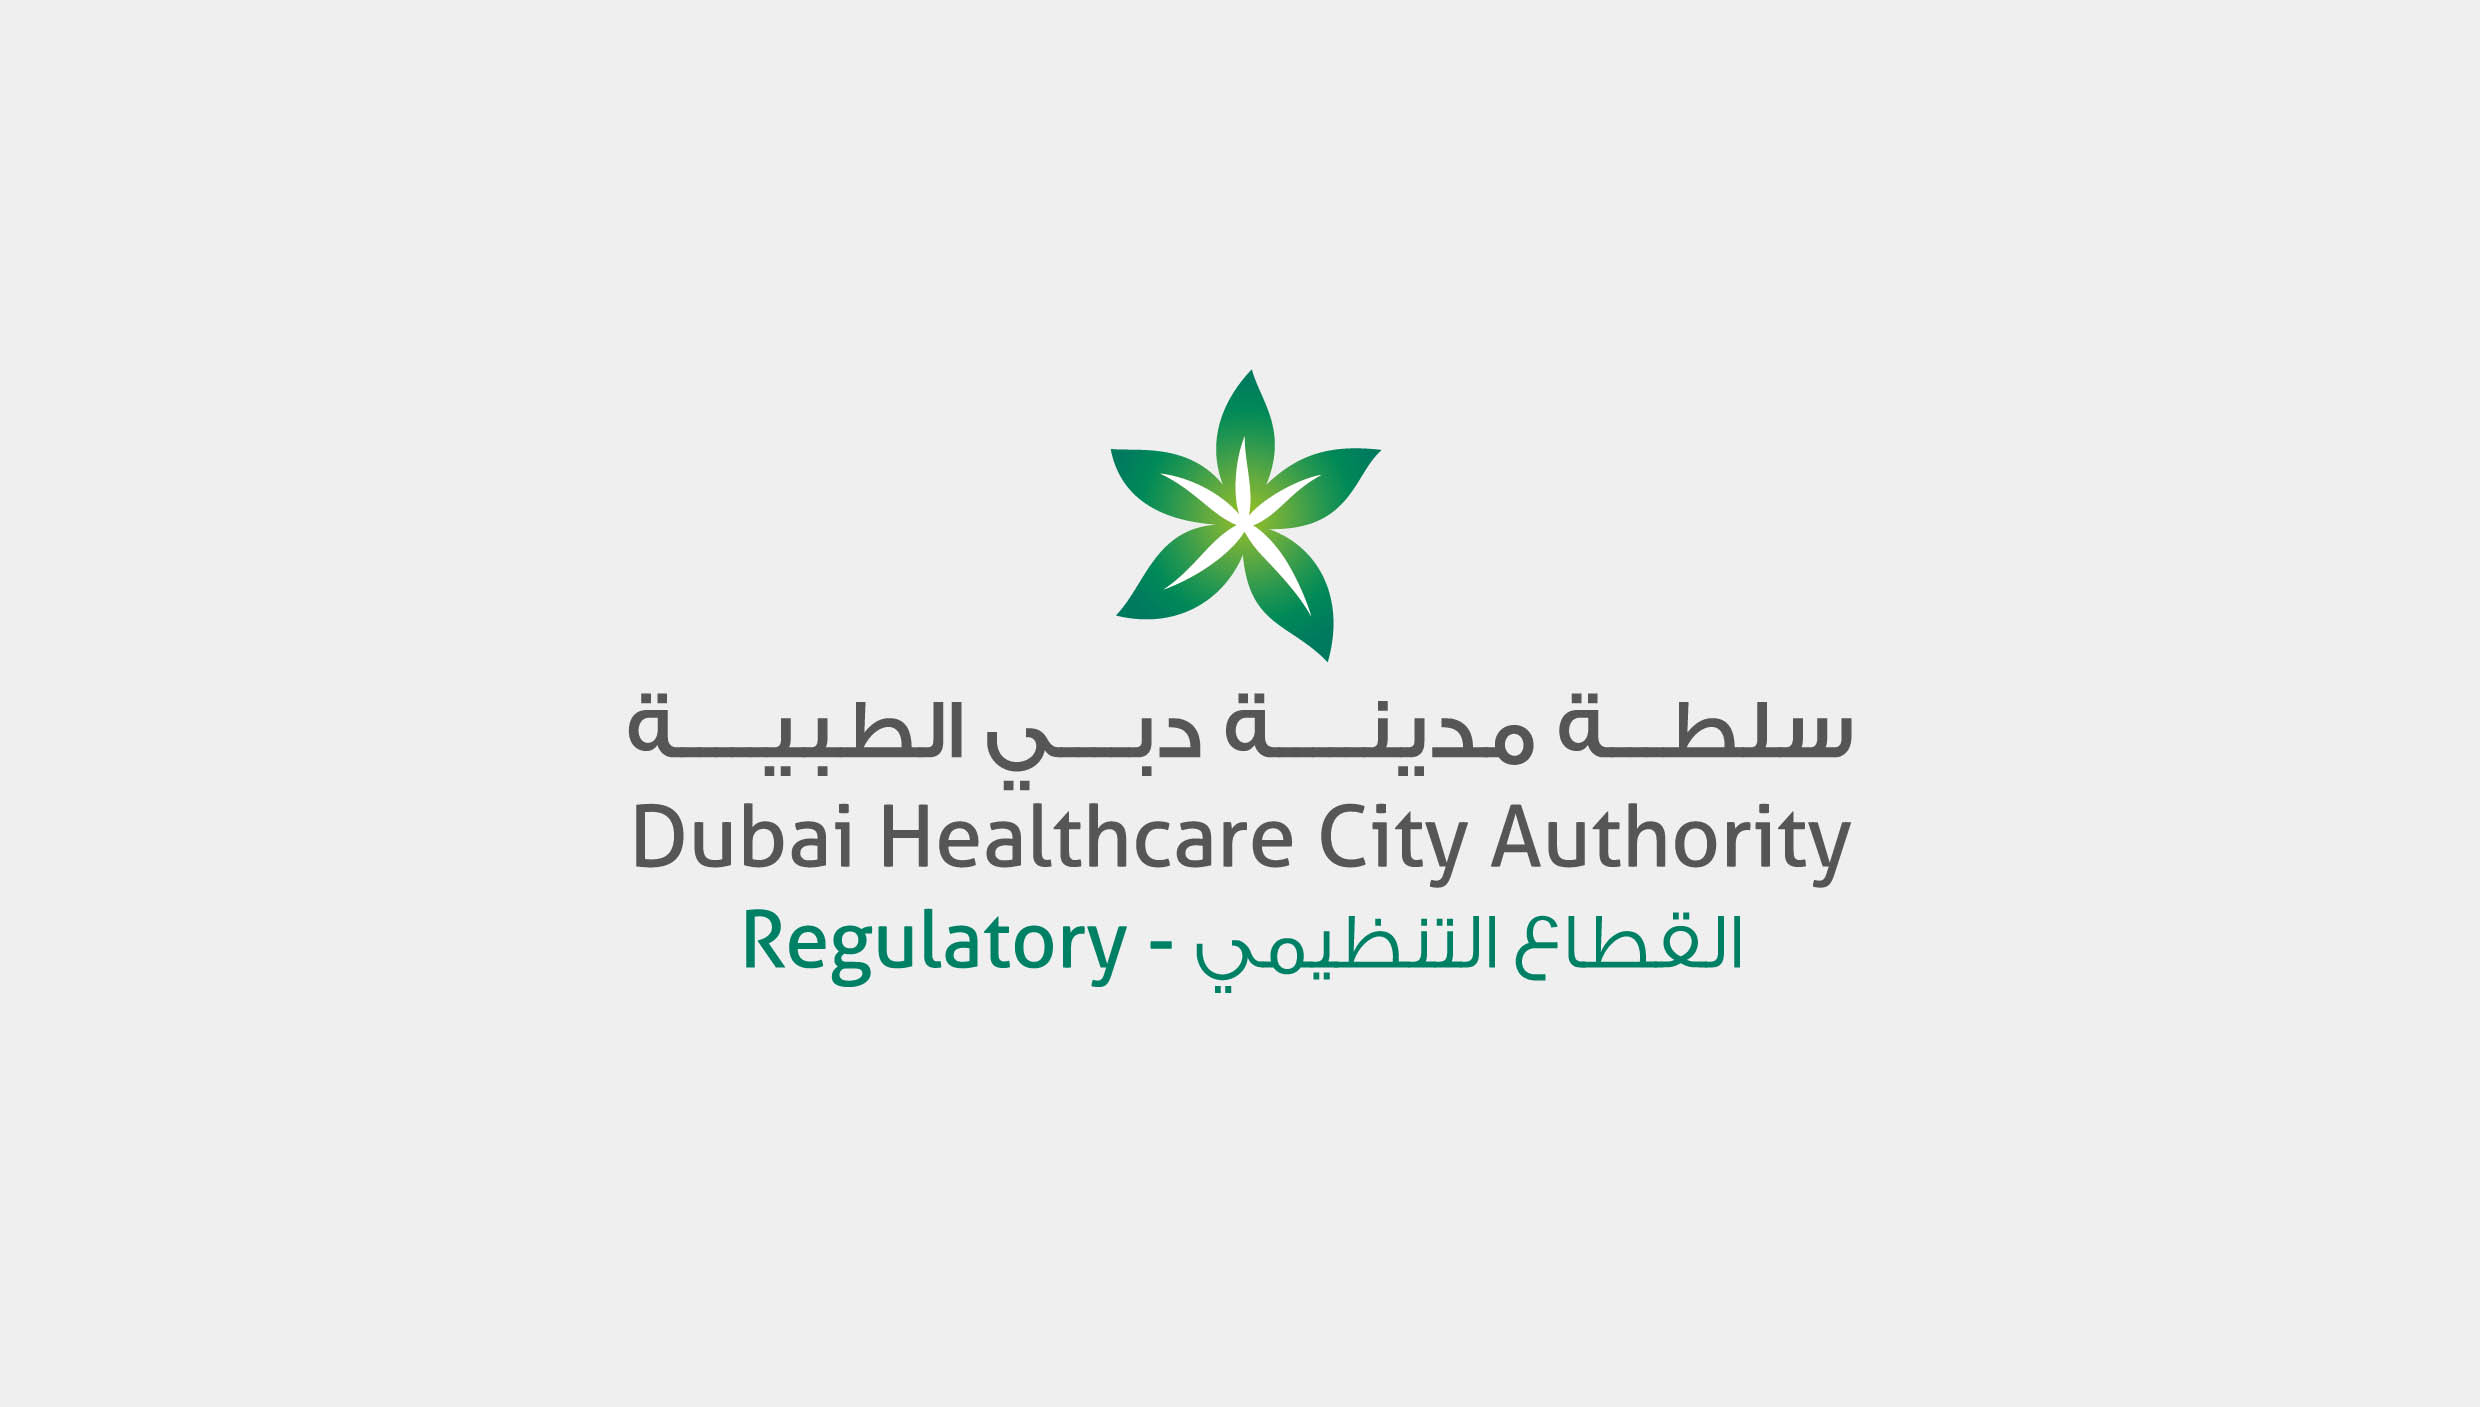 UNDER THE PATRONAGE OF HIS HIGHNESS SHEIKH AHMED BIN SAEED AL MAKTOUM,  DHCA EXCELLENCE AWARDS 2020 RECOGNIZE TOP EMIRATI CONTRIBUTORS TO HEALTHCARE